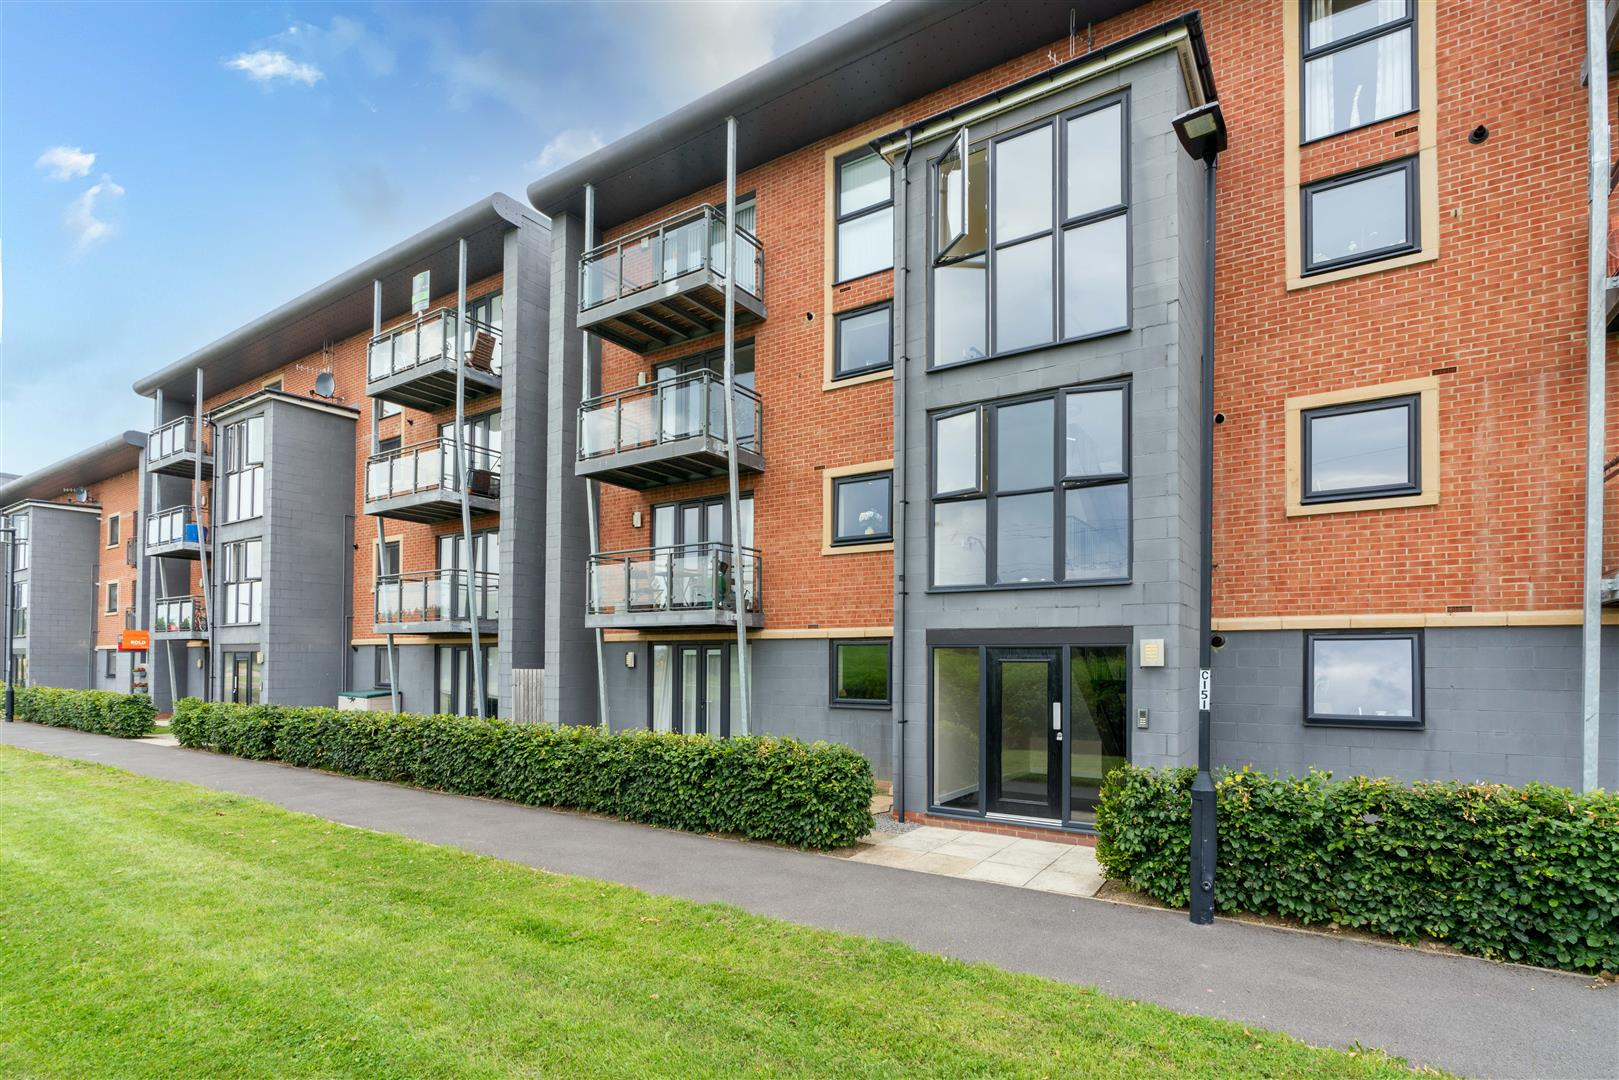 2 bed apartment for sale in Elmwood Park Court, Newcastle Upon Tyne, NE13